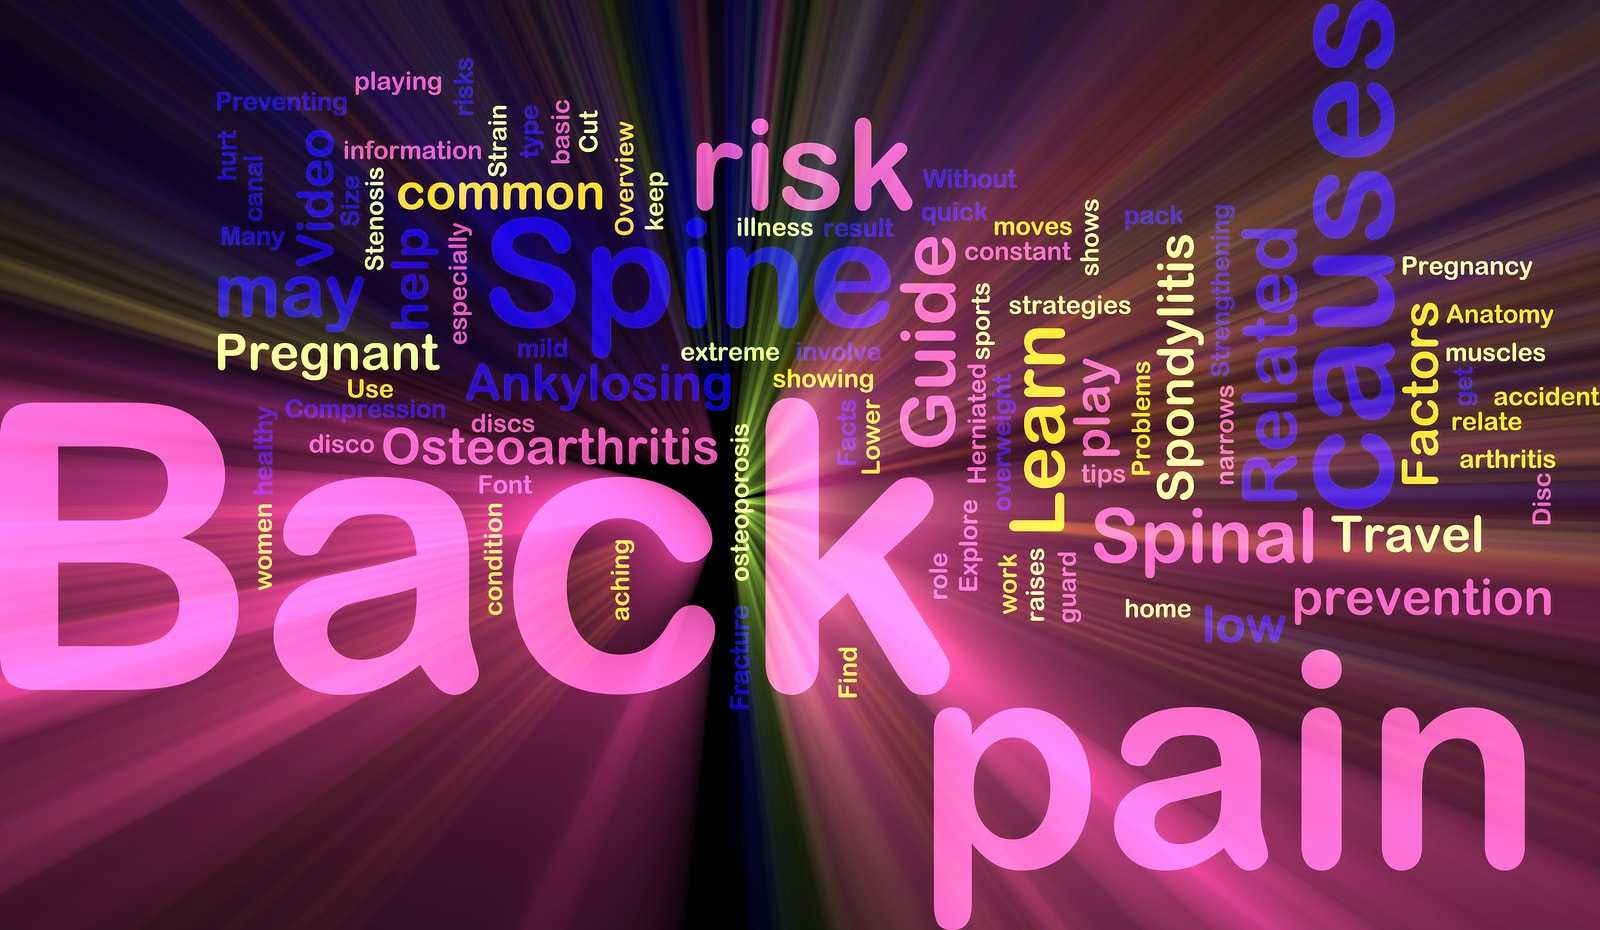 Complete information about back pain